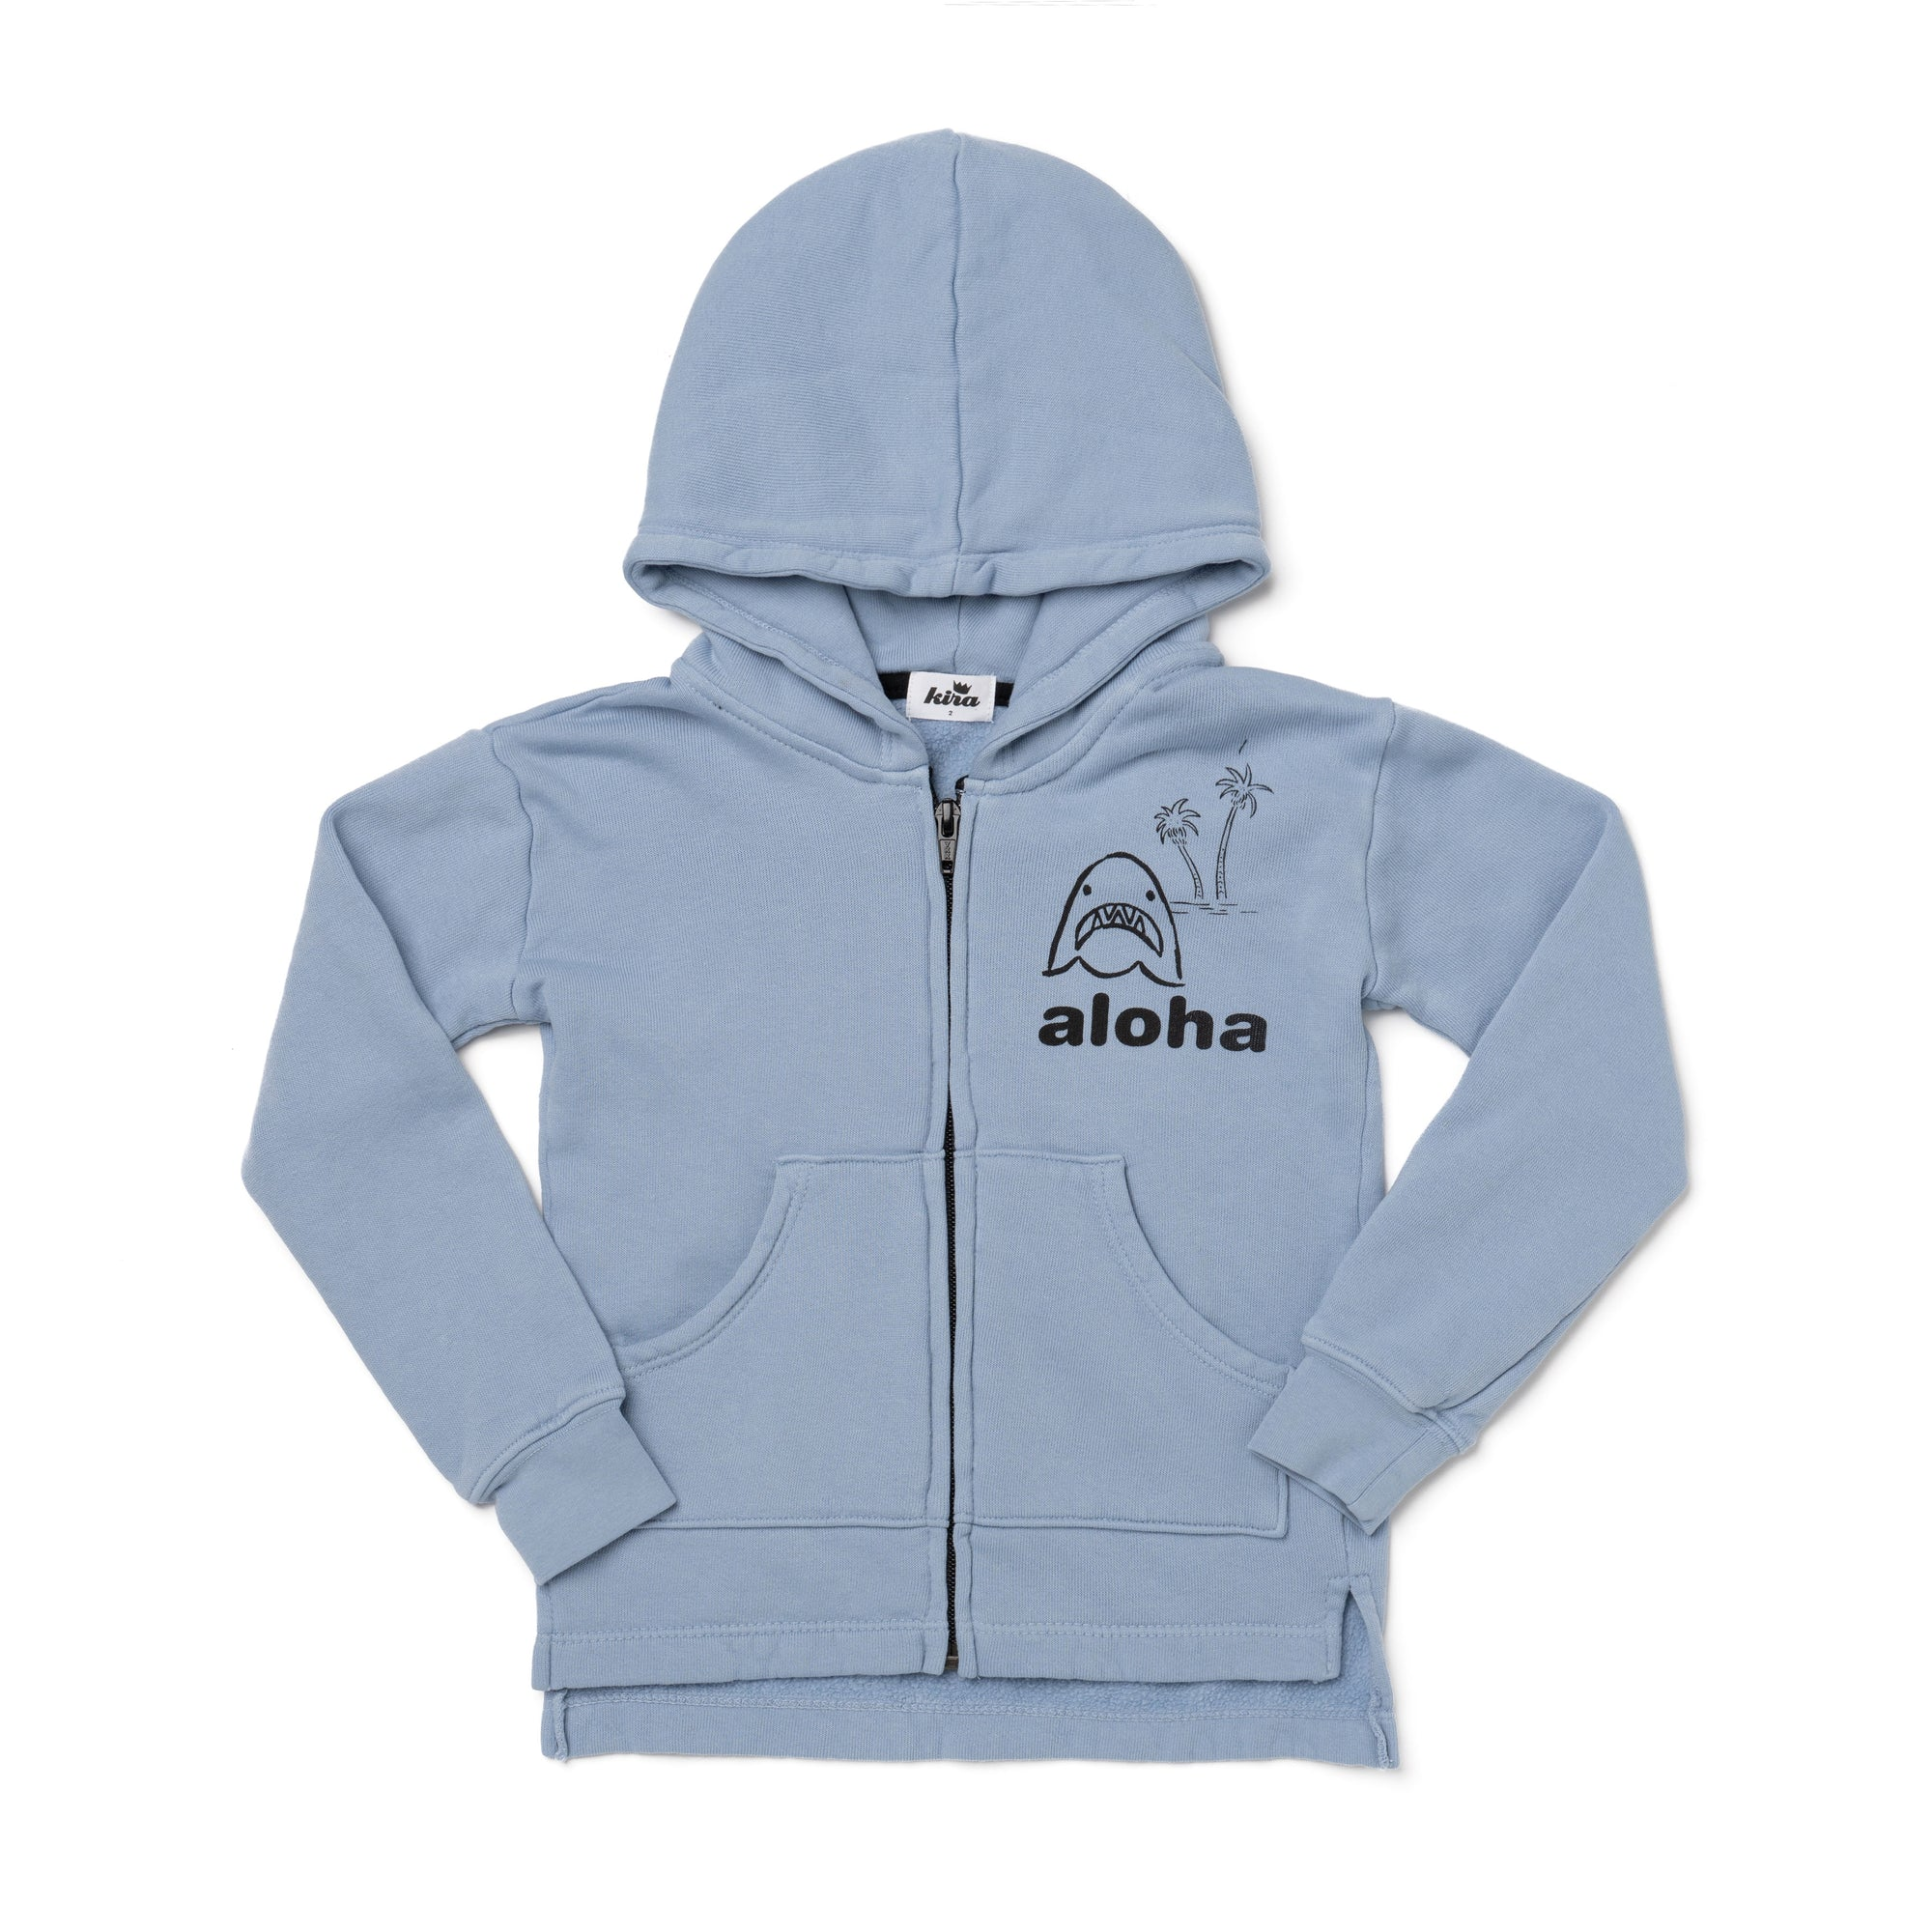 Aloha Jaws Graphic Zip Hooded Sweatshirt, Stone Blue